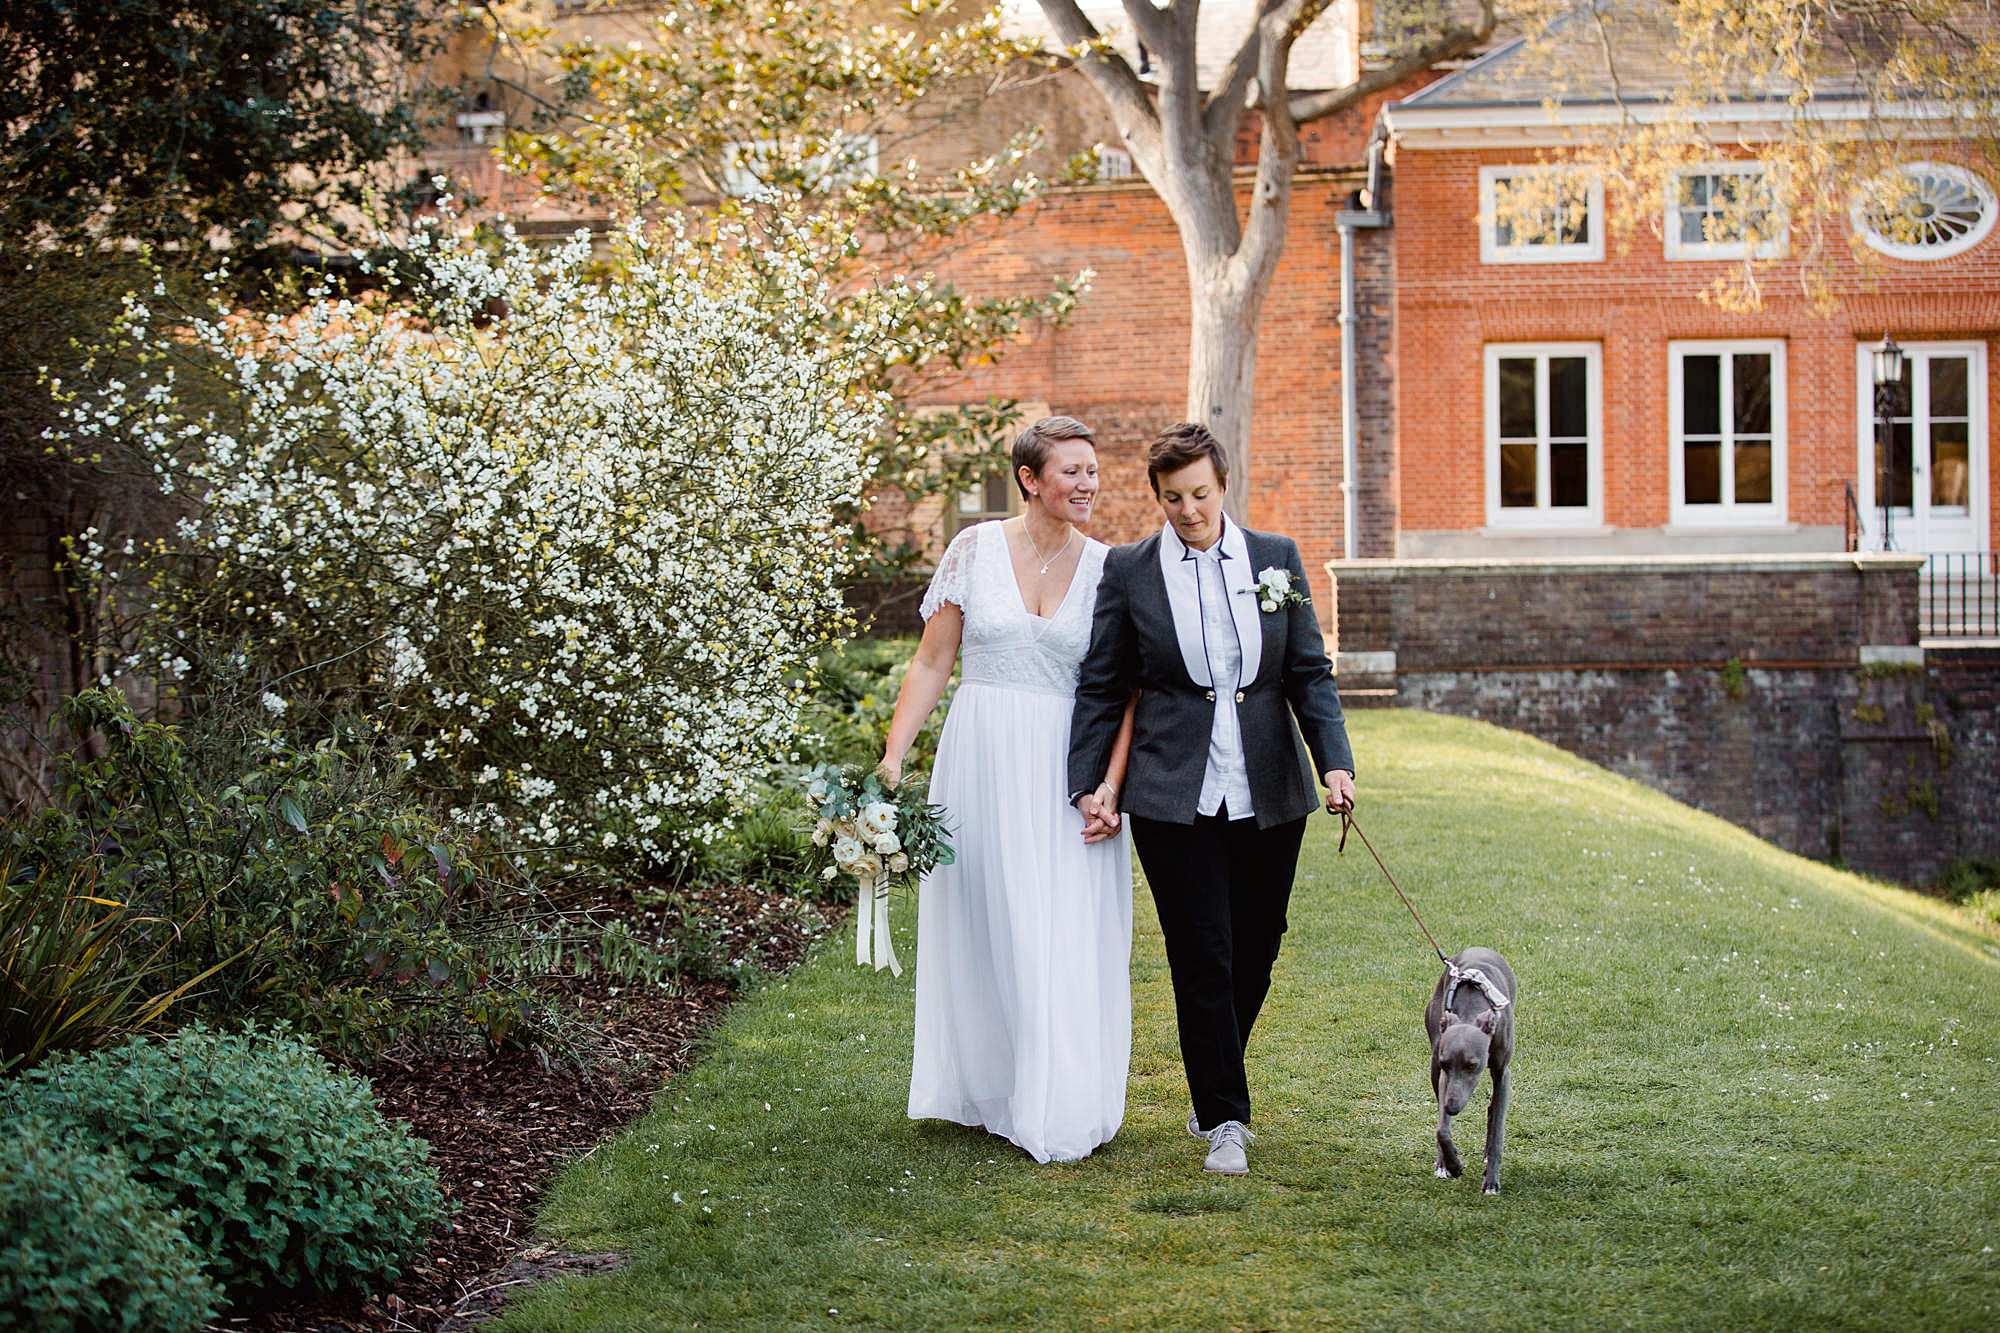 Twickenham wedding photography brides walk third dog through york house gardens